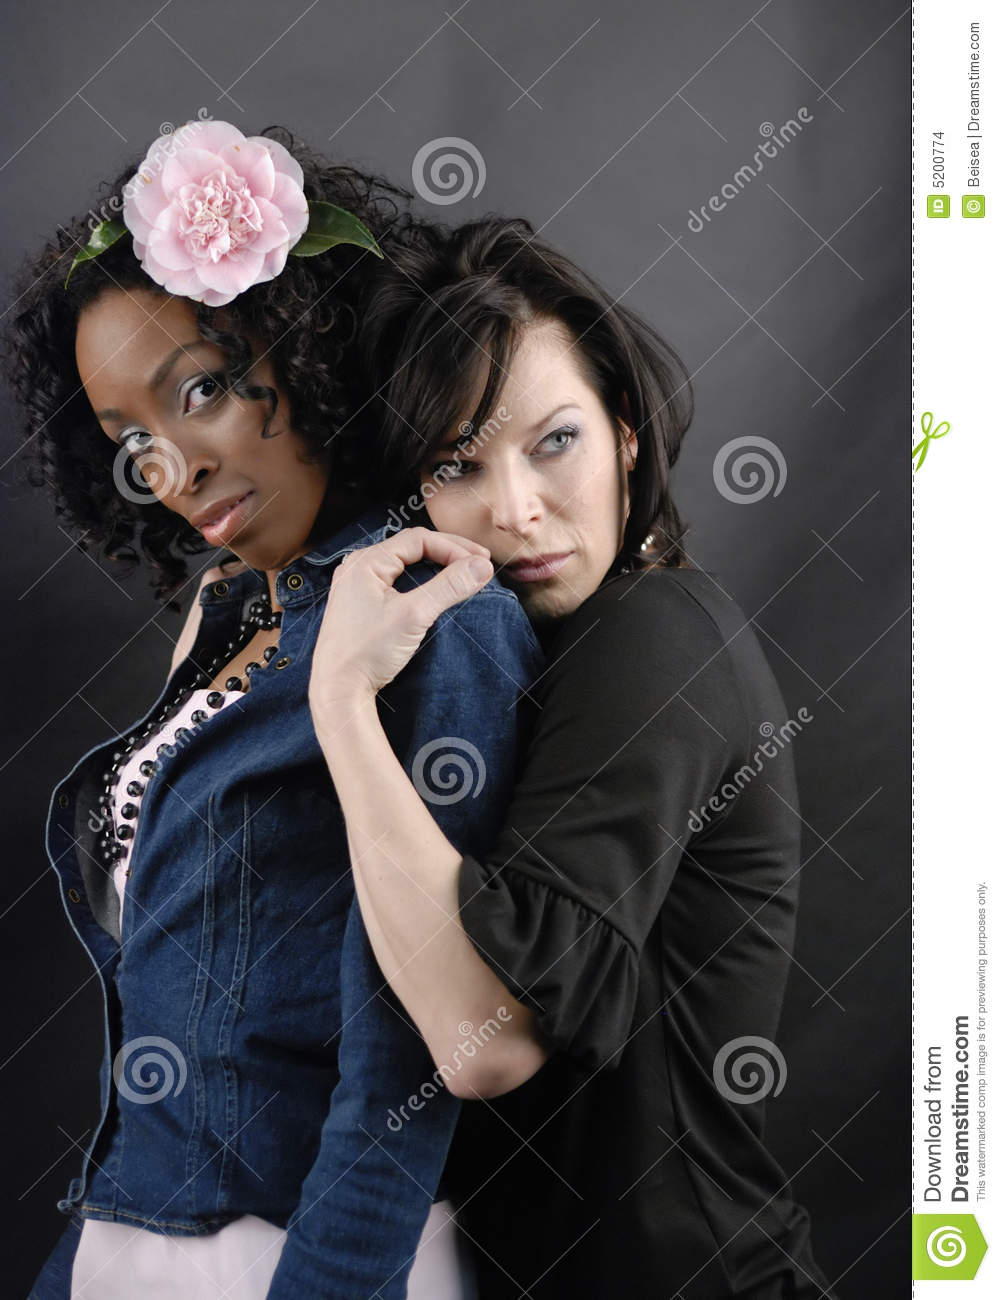 Black lesbian dating in toronto